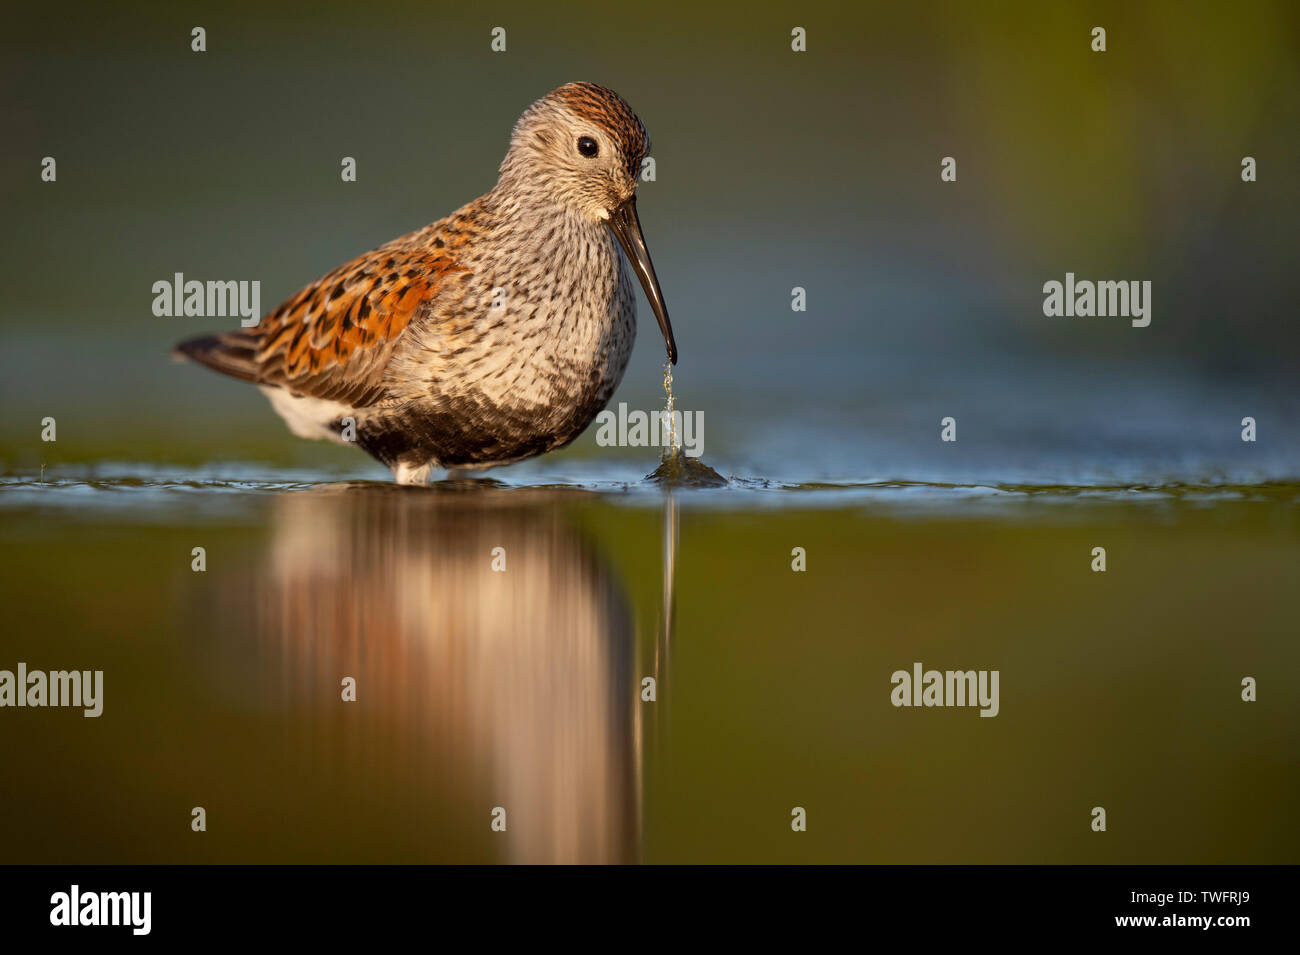 A Dunlin in breeding plumage pulls some grass from the shallow water with the golden morning sun shining on it and the green reflected water. - Stock Image